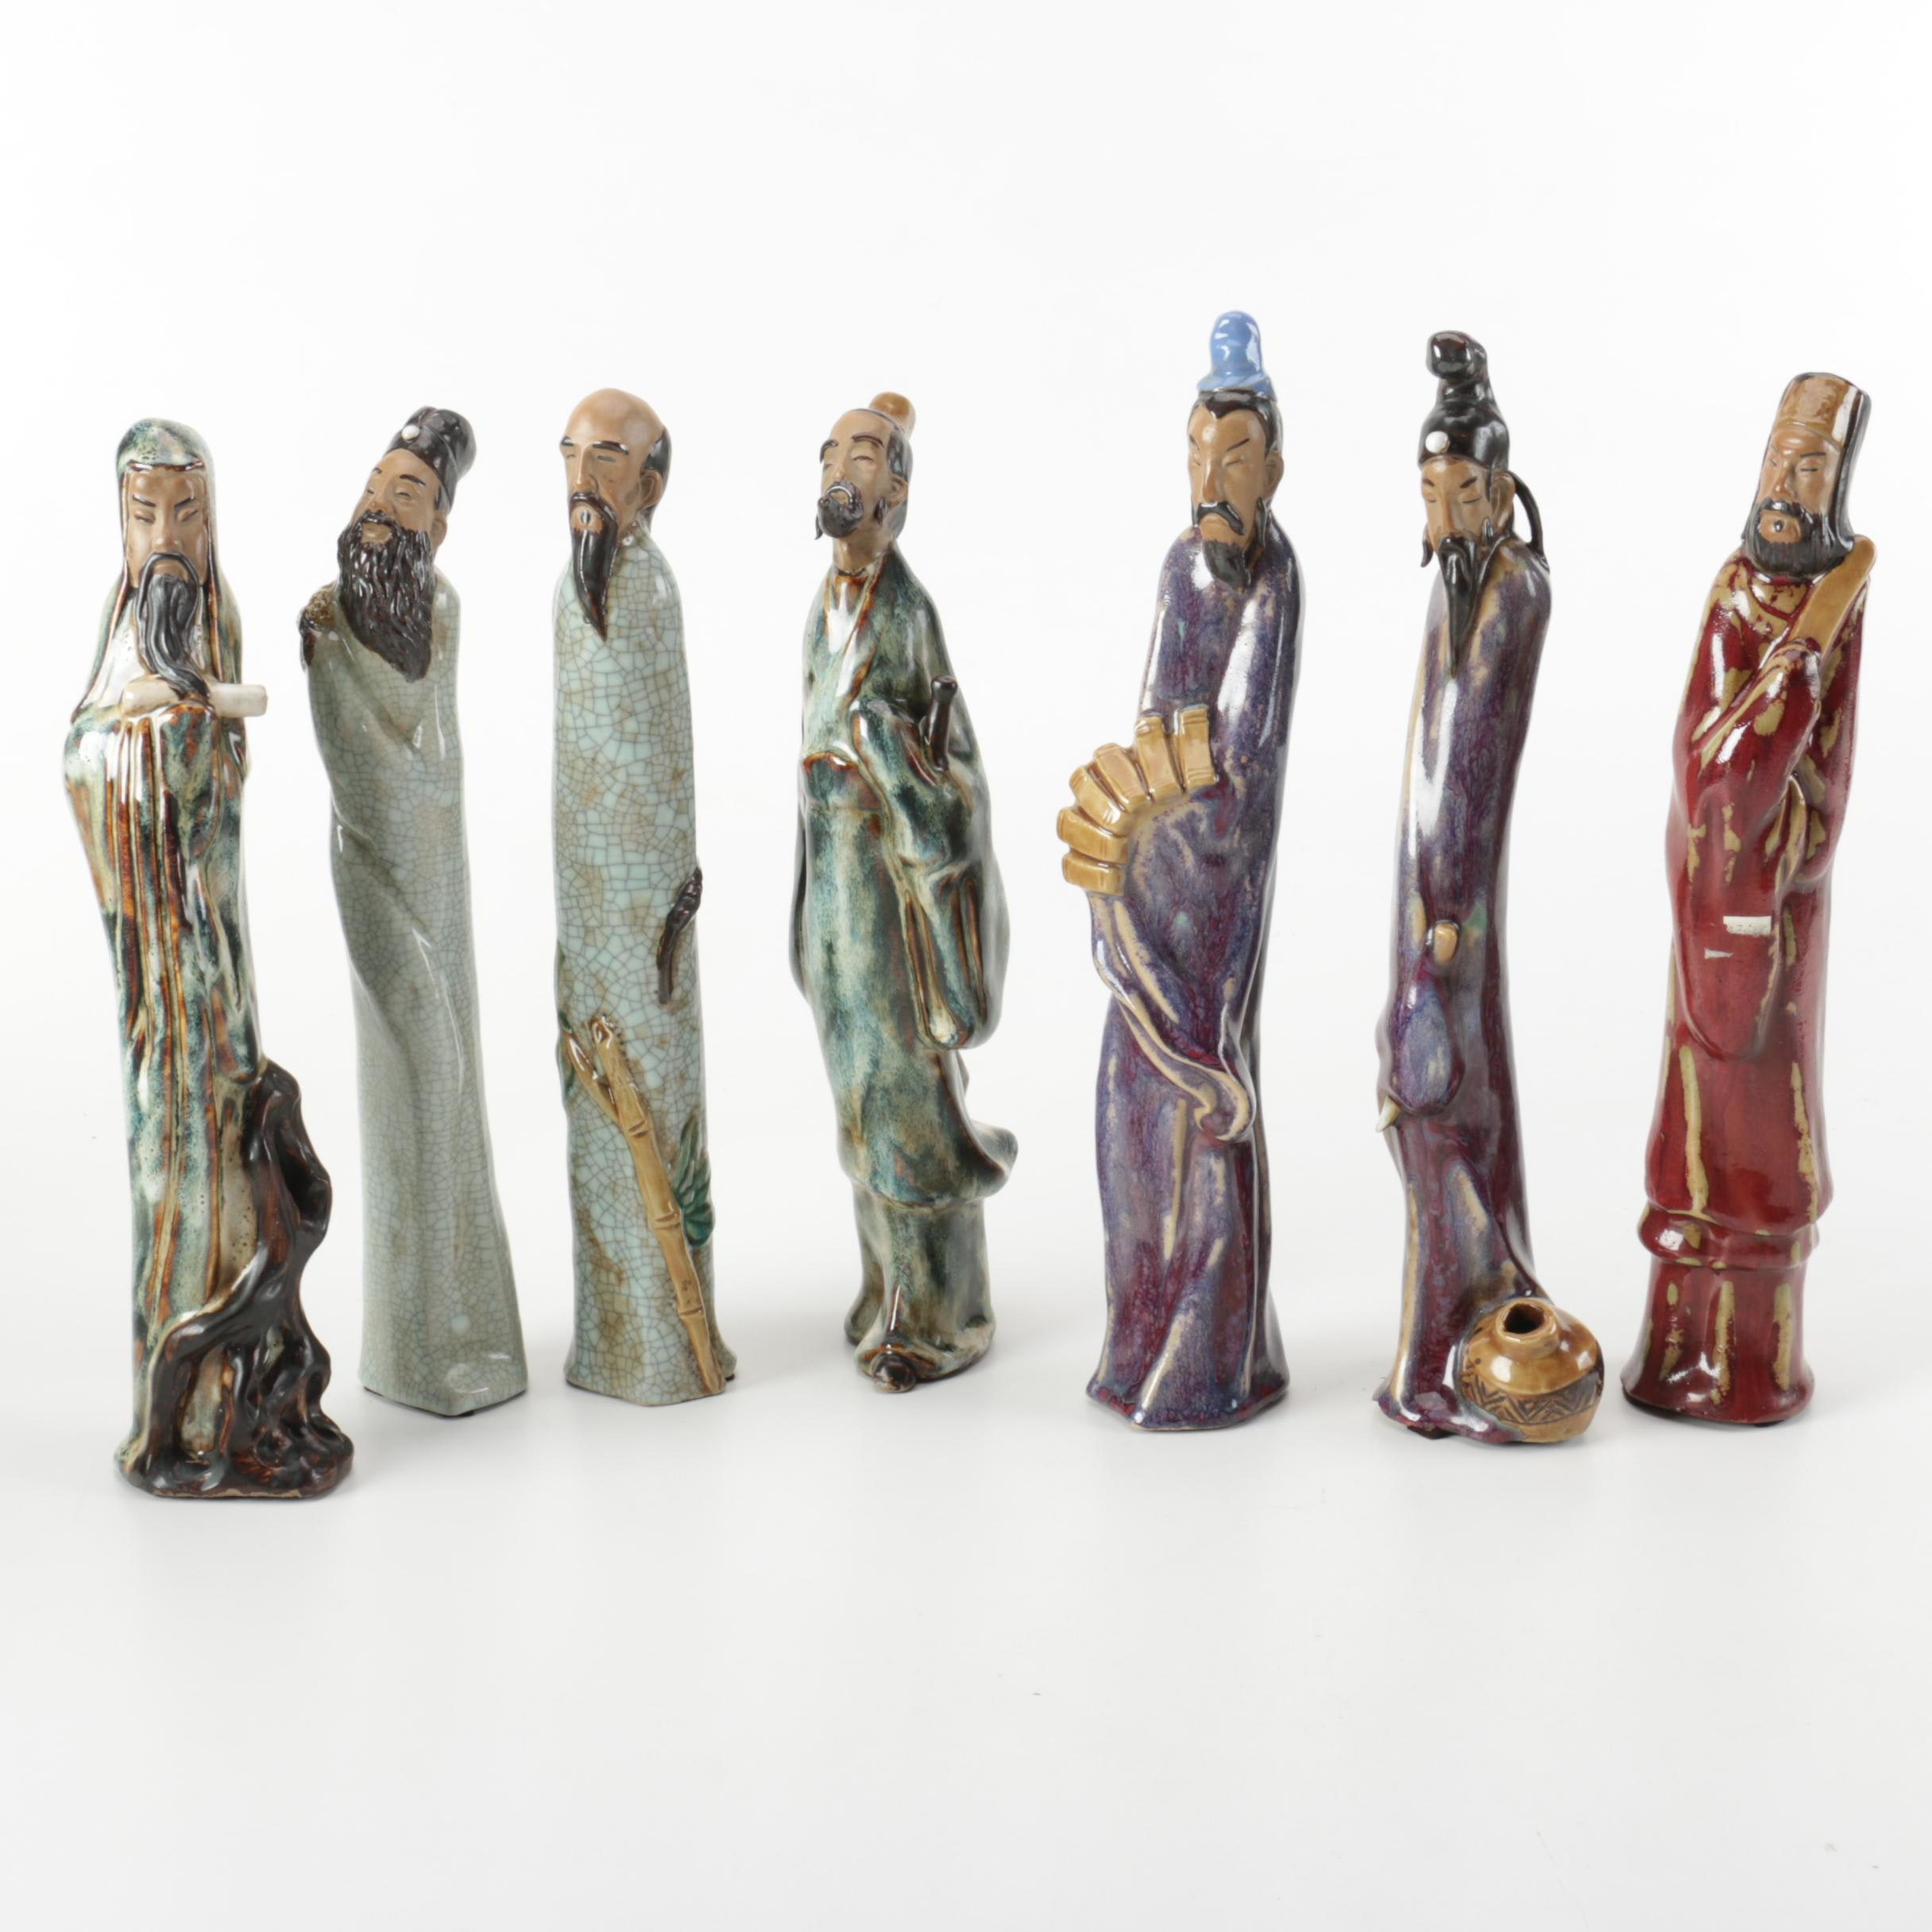 Collection of Ceramic Asian Figurines